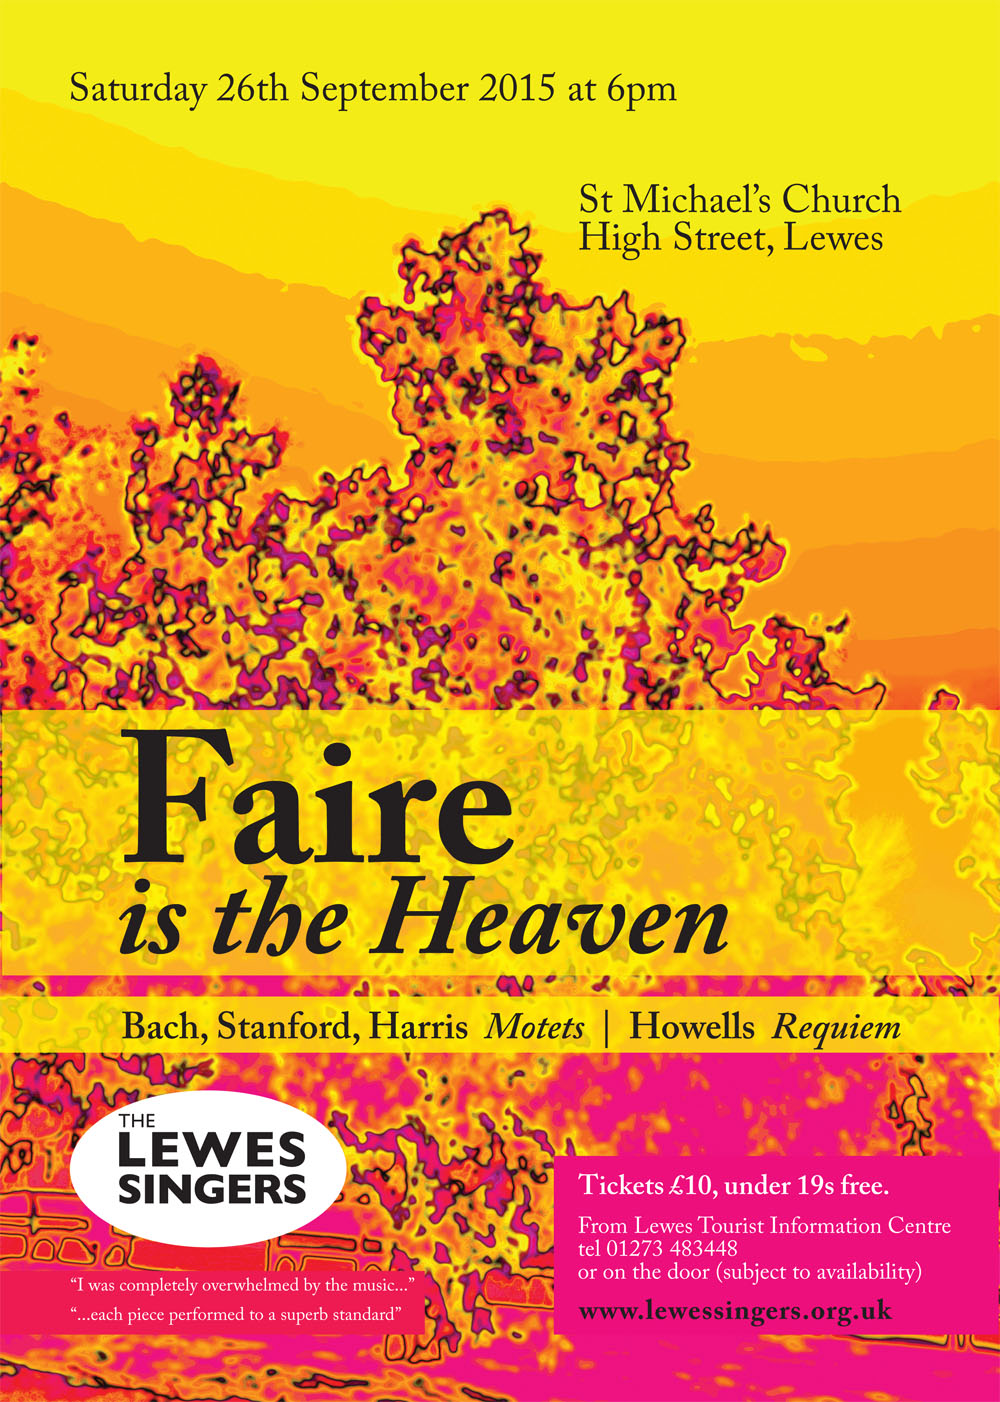 Lewes Singers Faire is the Heaven - concert 26/9 in Lewes